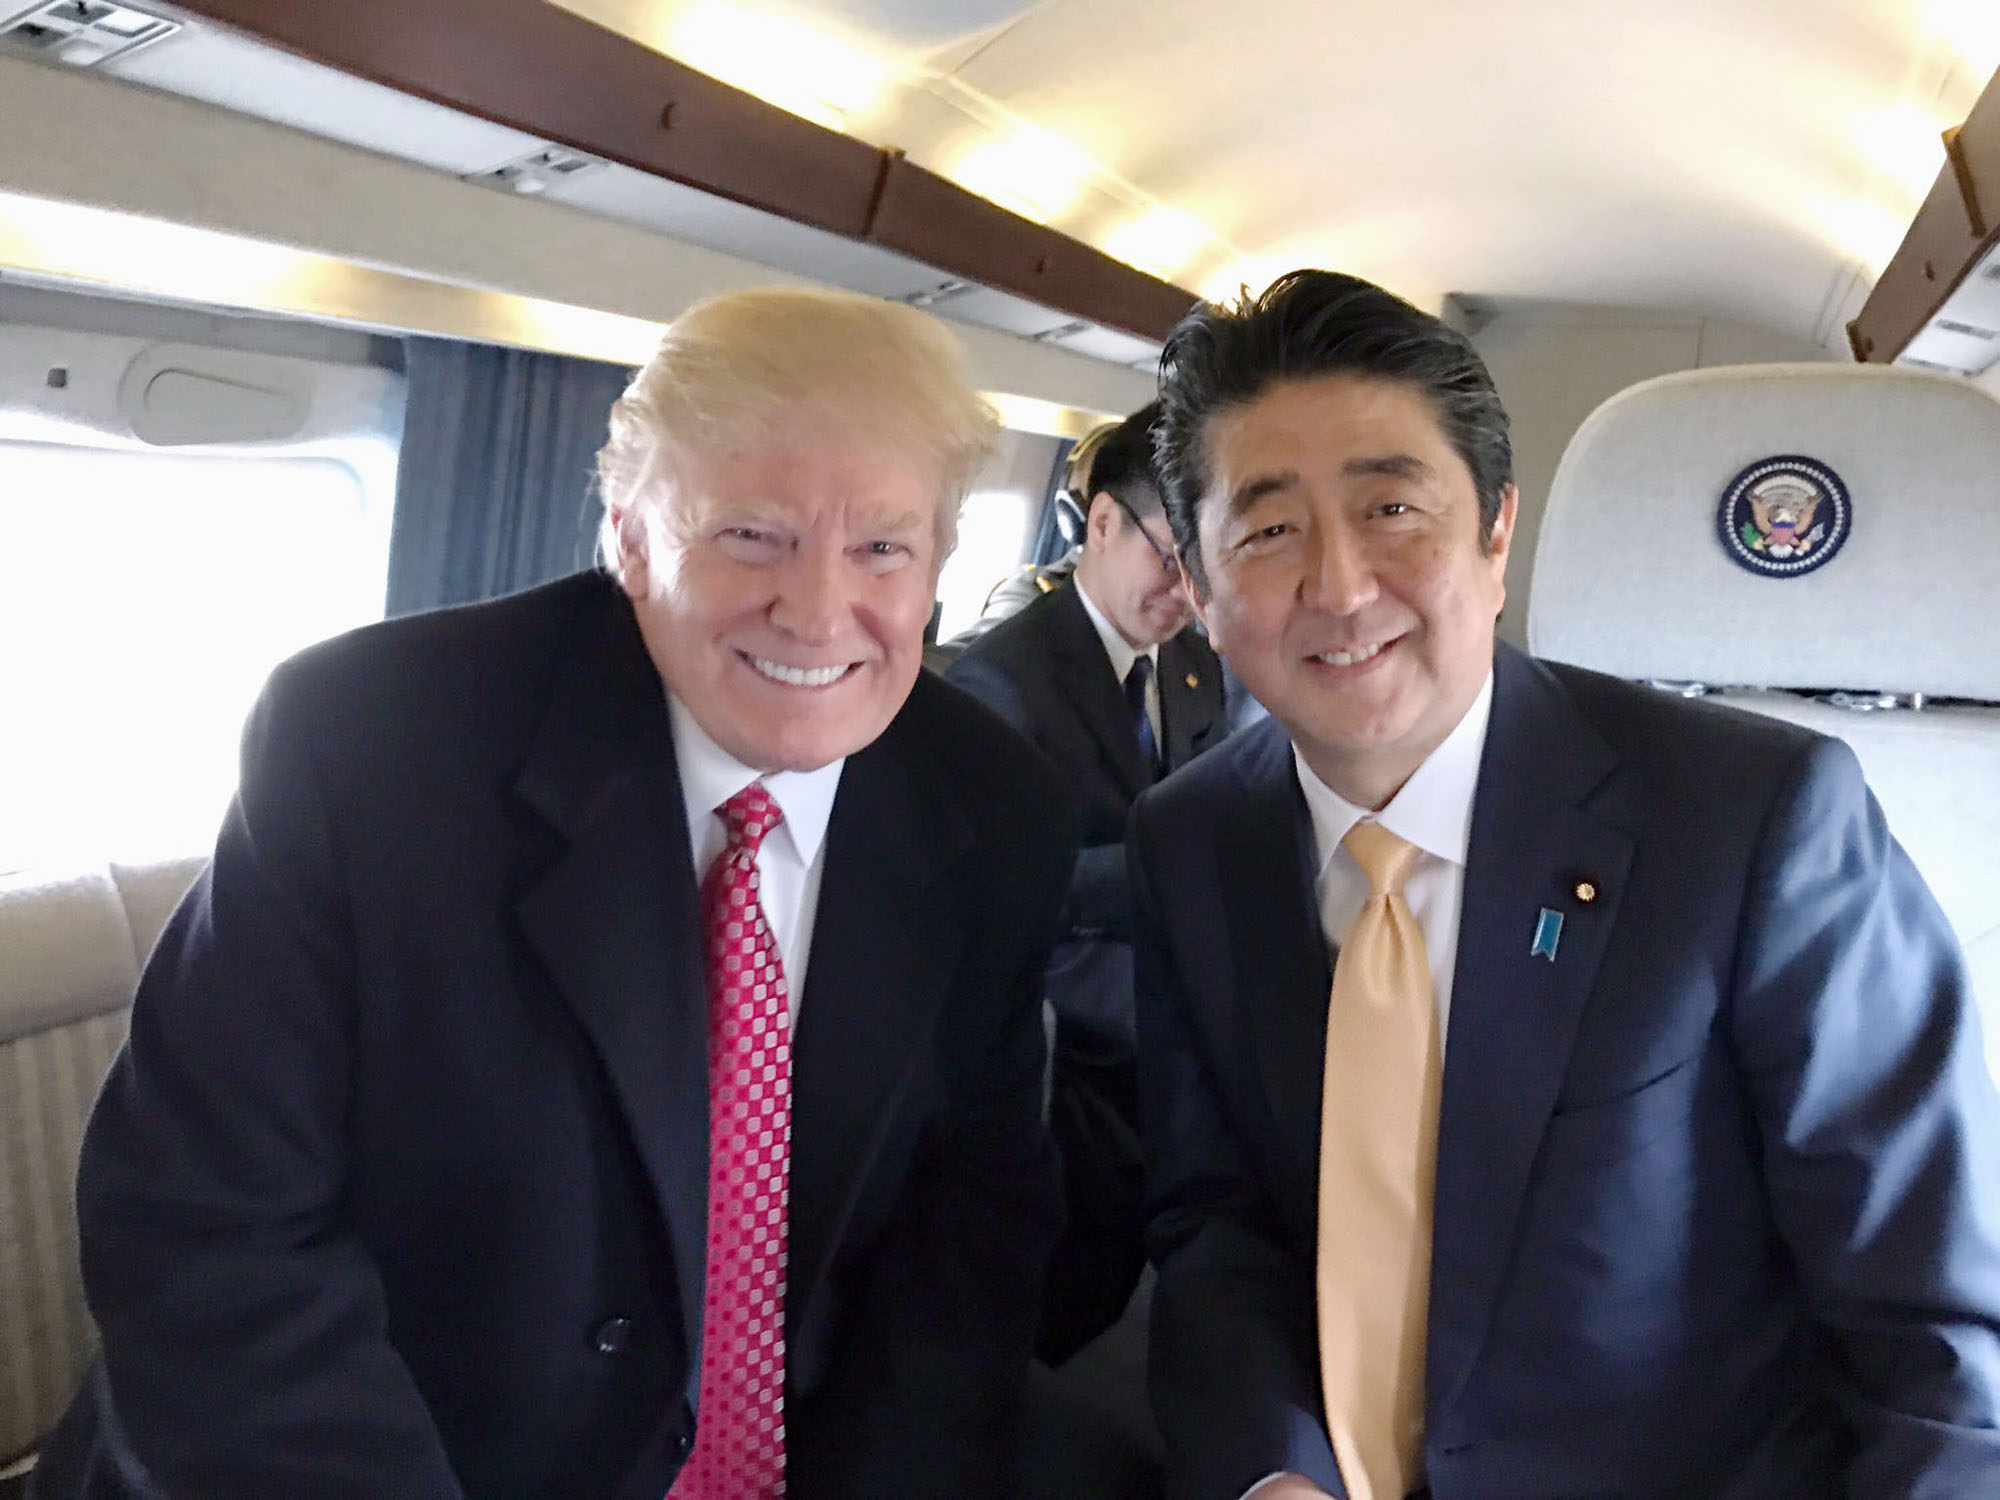 Prime Minister Shinzo Abe and U.S. President Donald Trump developed a close rapport during their February U.S. summit, as seen in a photo taken during a Feb. 10 flight aboard the Marine One presidential helicopter that was later tweeted by Trump.   KYODO